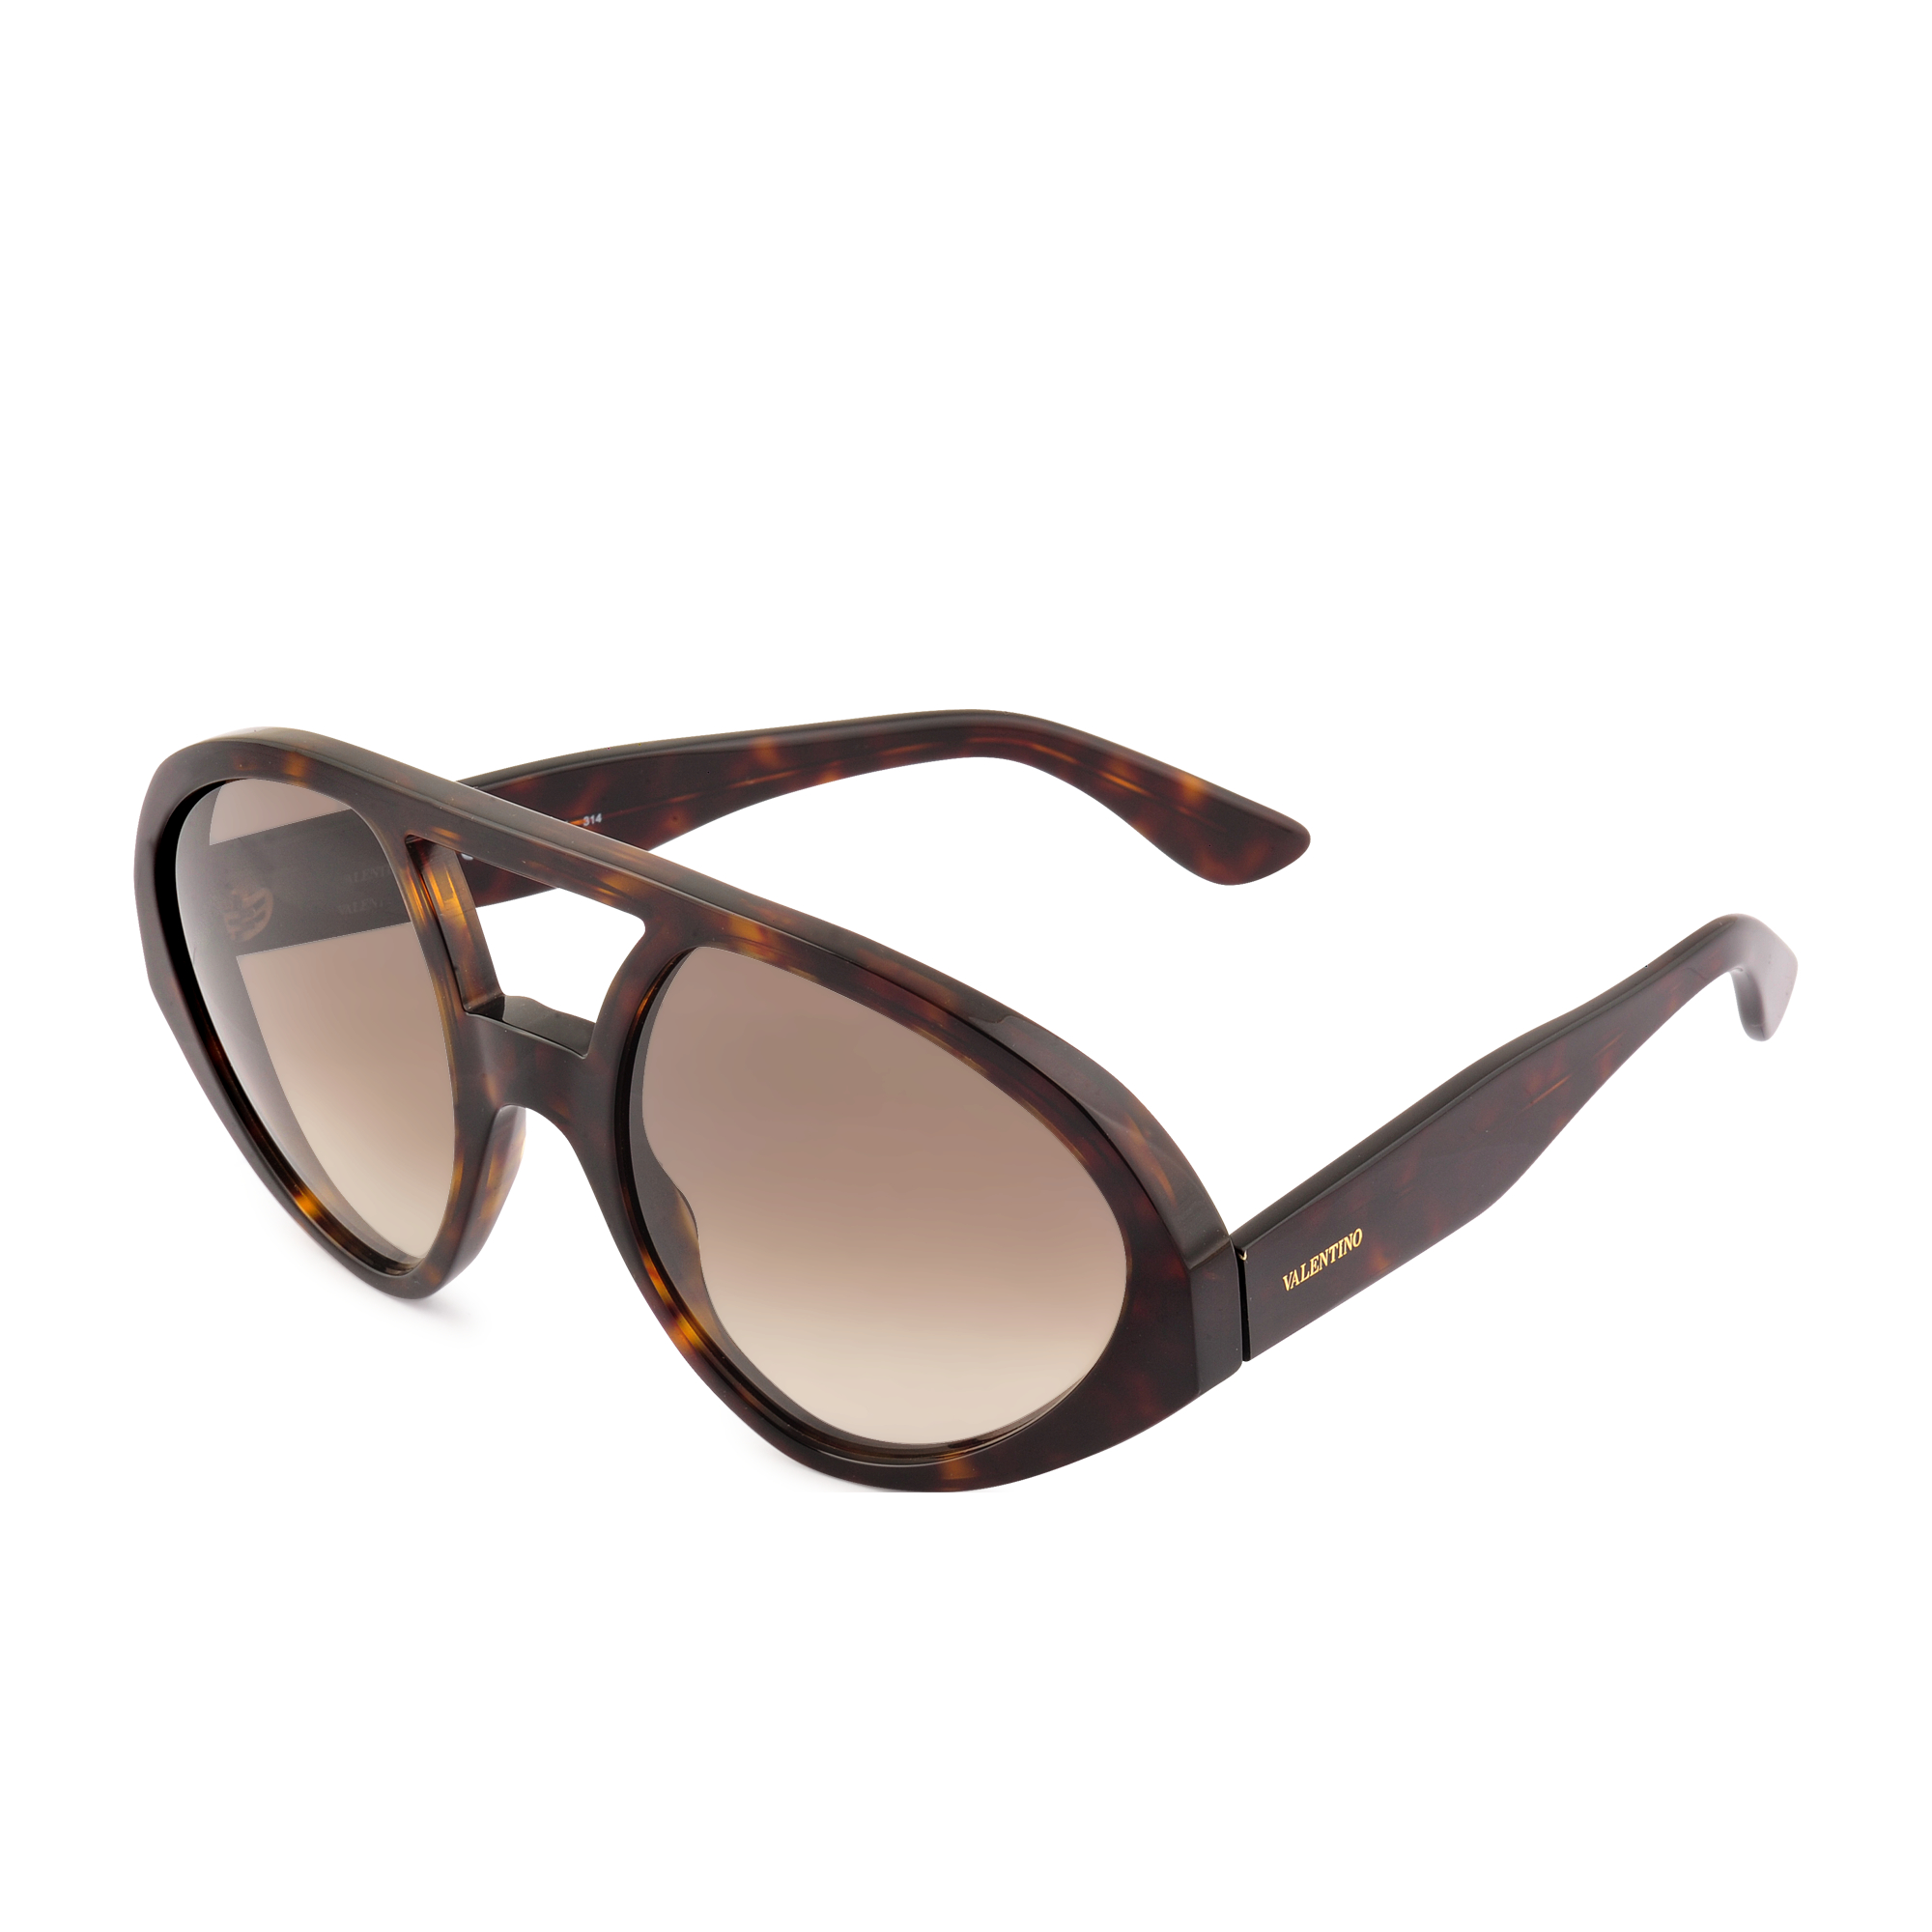 Valentino Glasses Frames 2015 : Valentino V708s Sunglasses in Brown Lyst